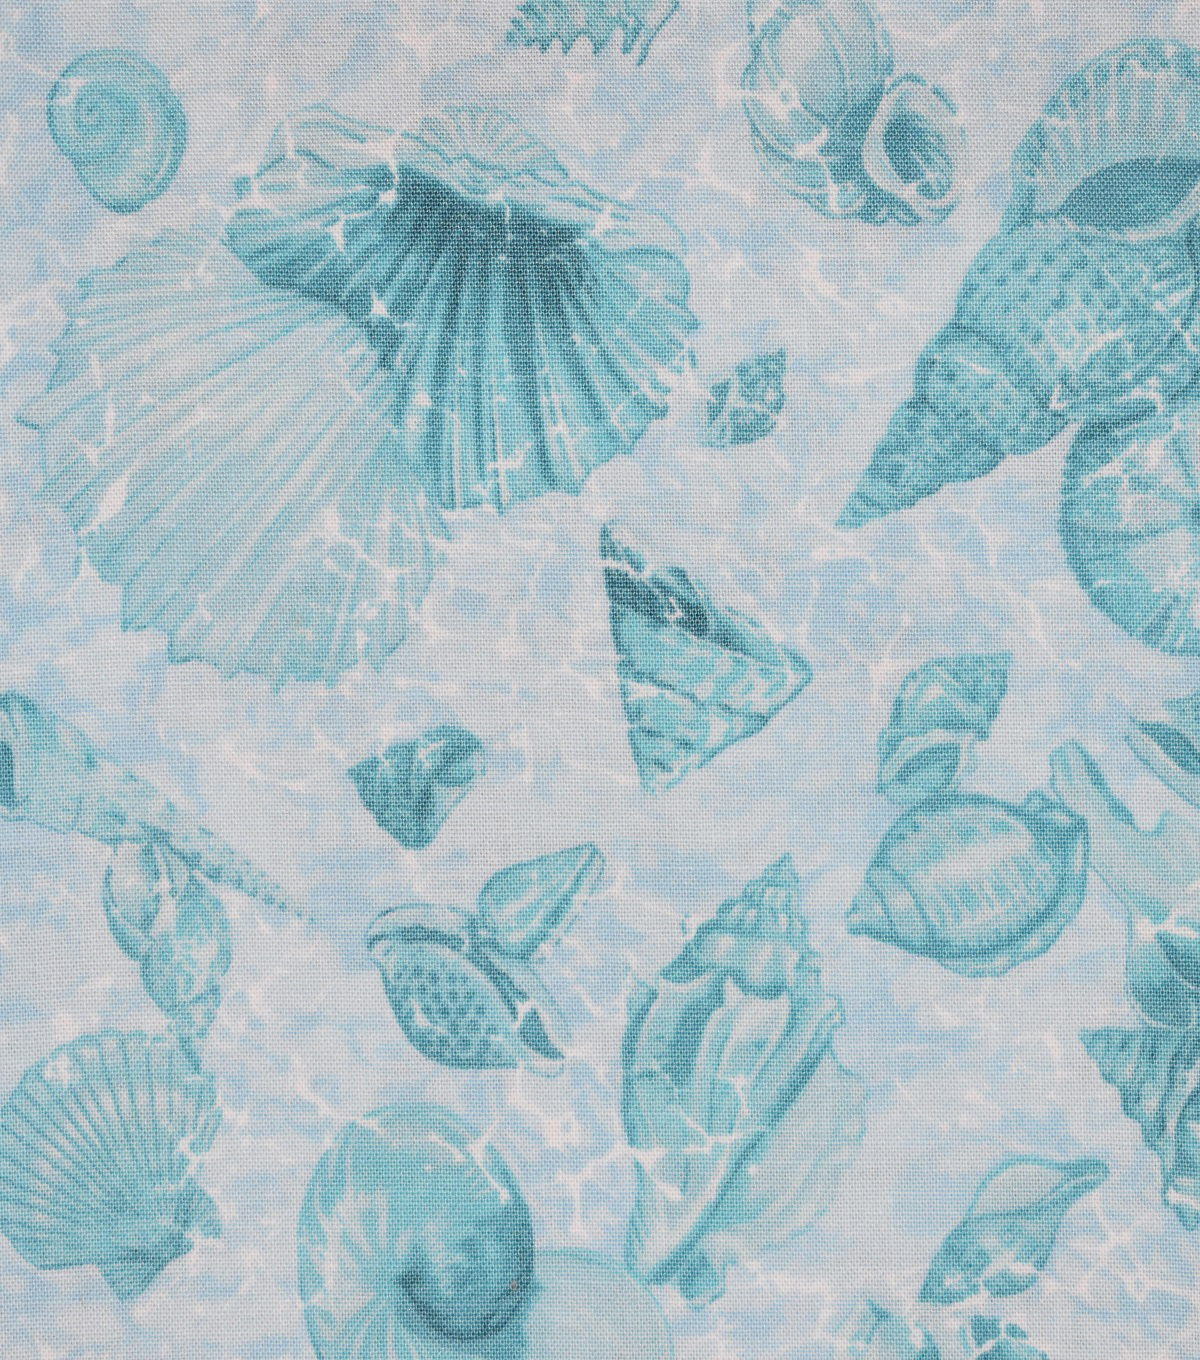 Novelty Cotton Fabric -Mixed Shells on Sea Foam